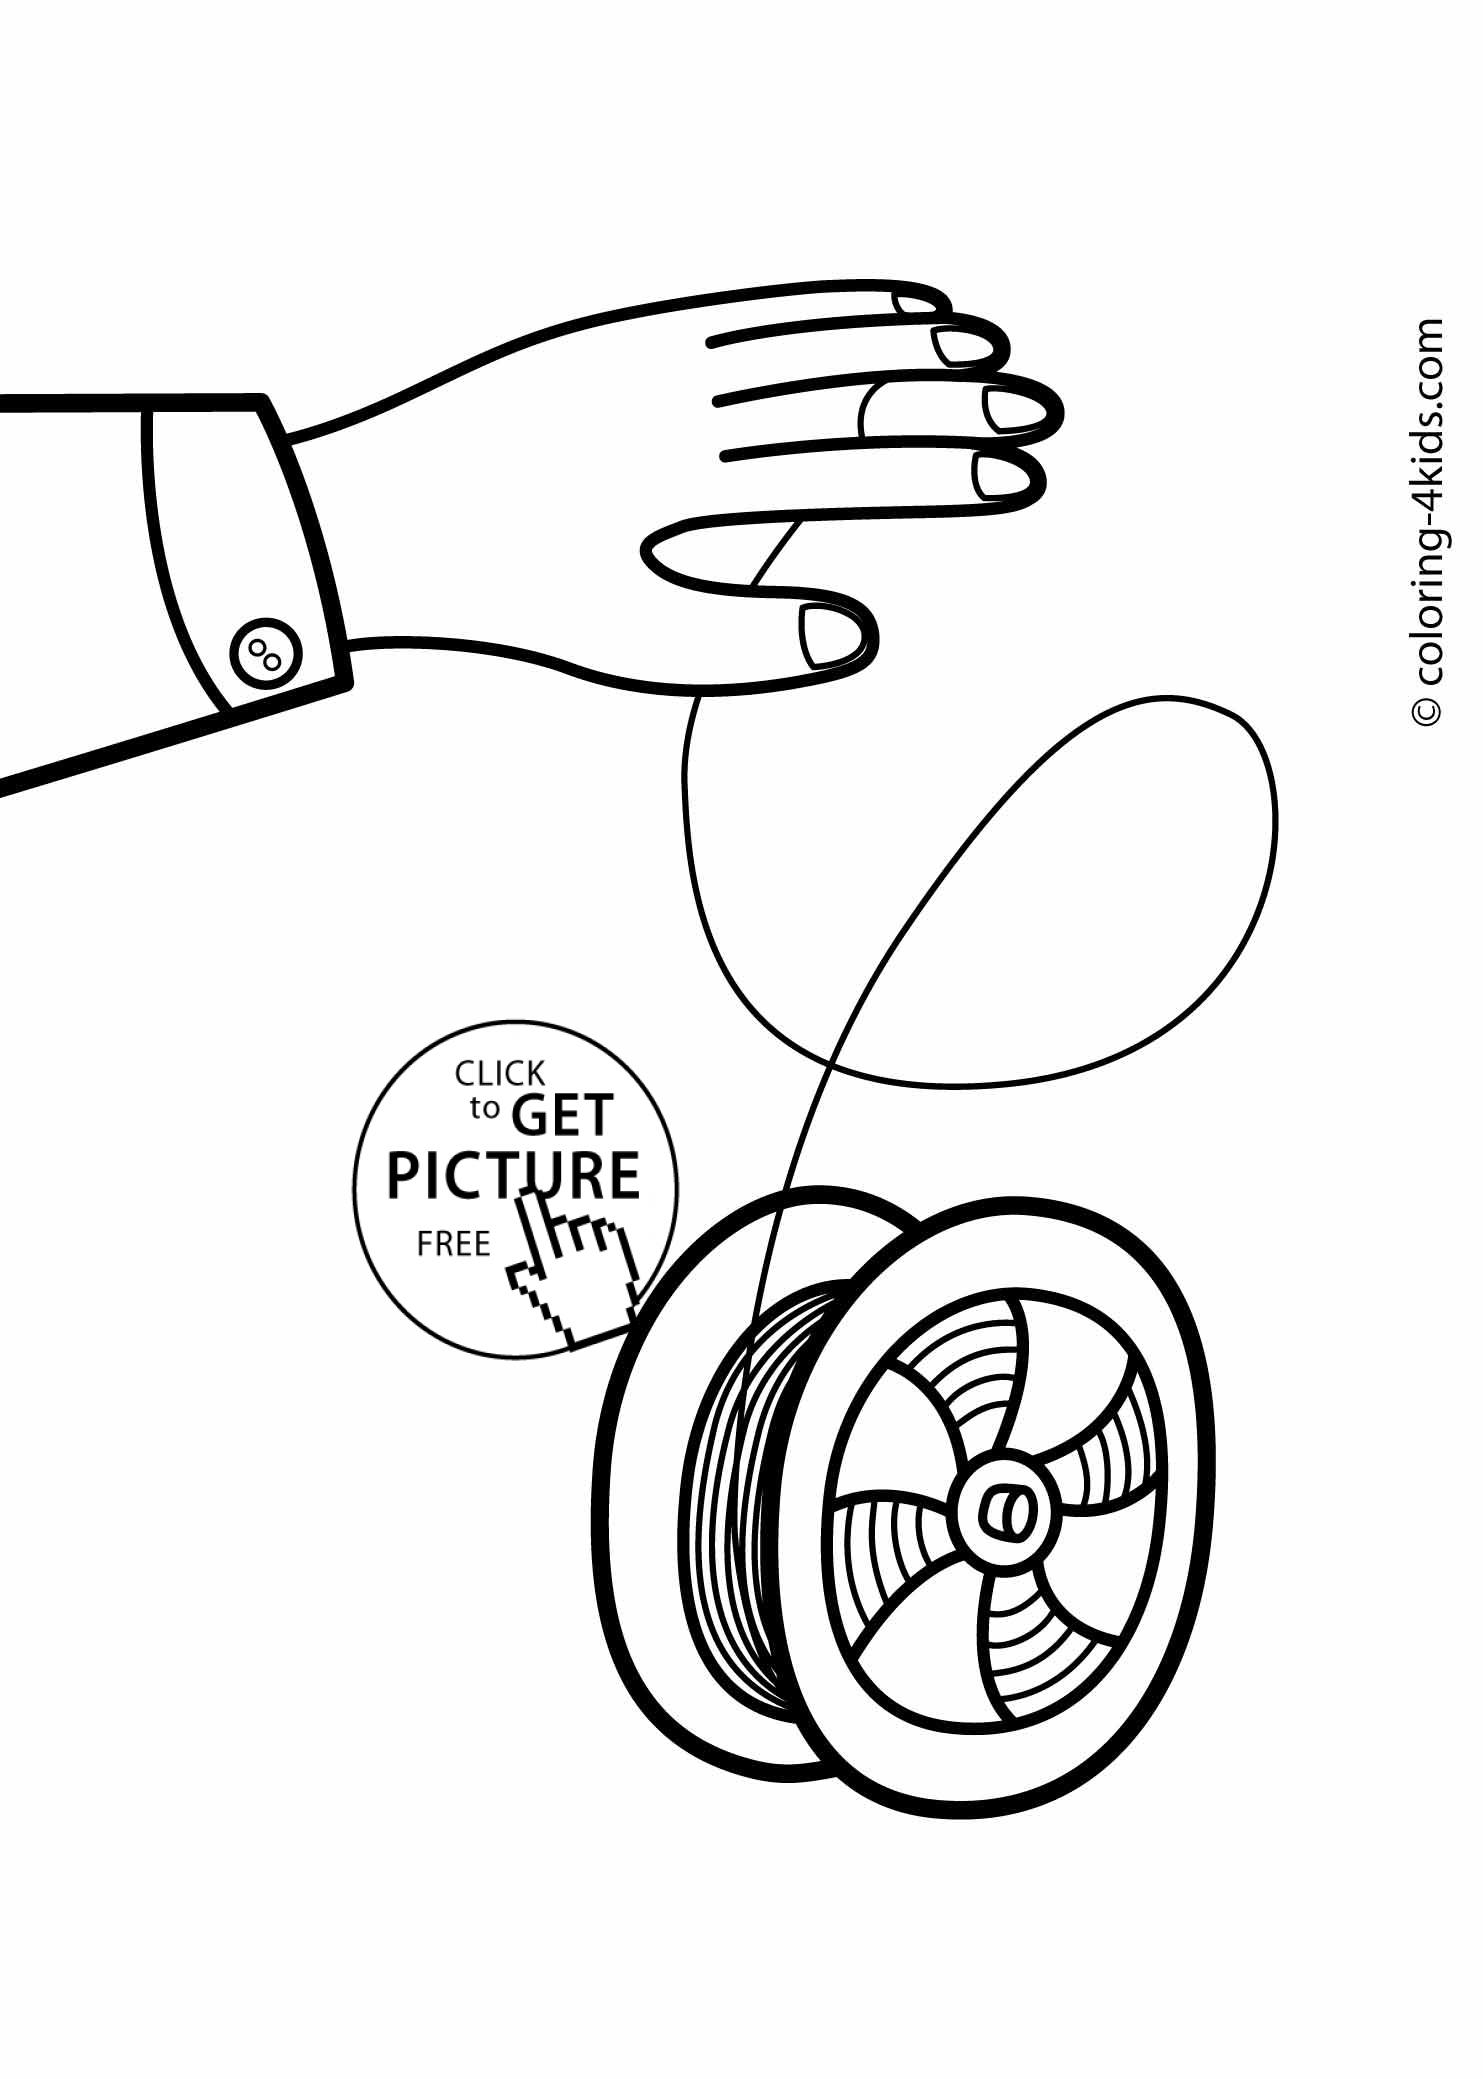 Yo-yo coloring pages for kids  printable drawing